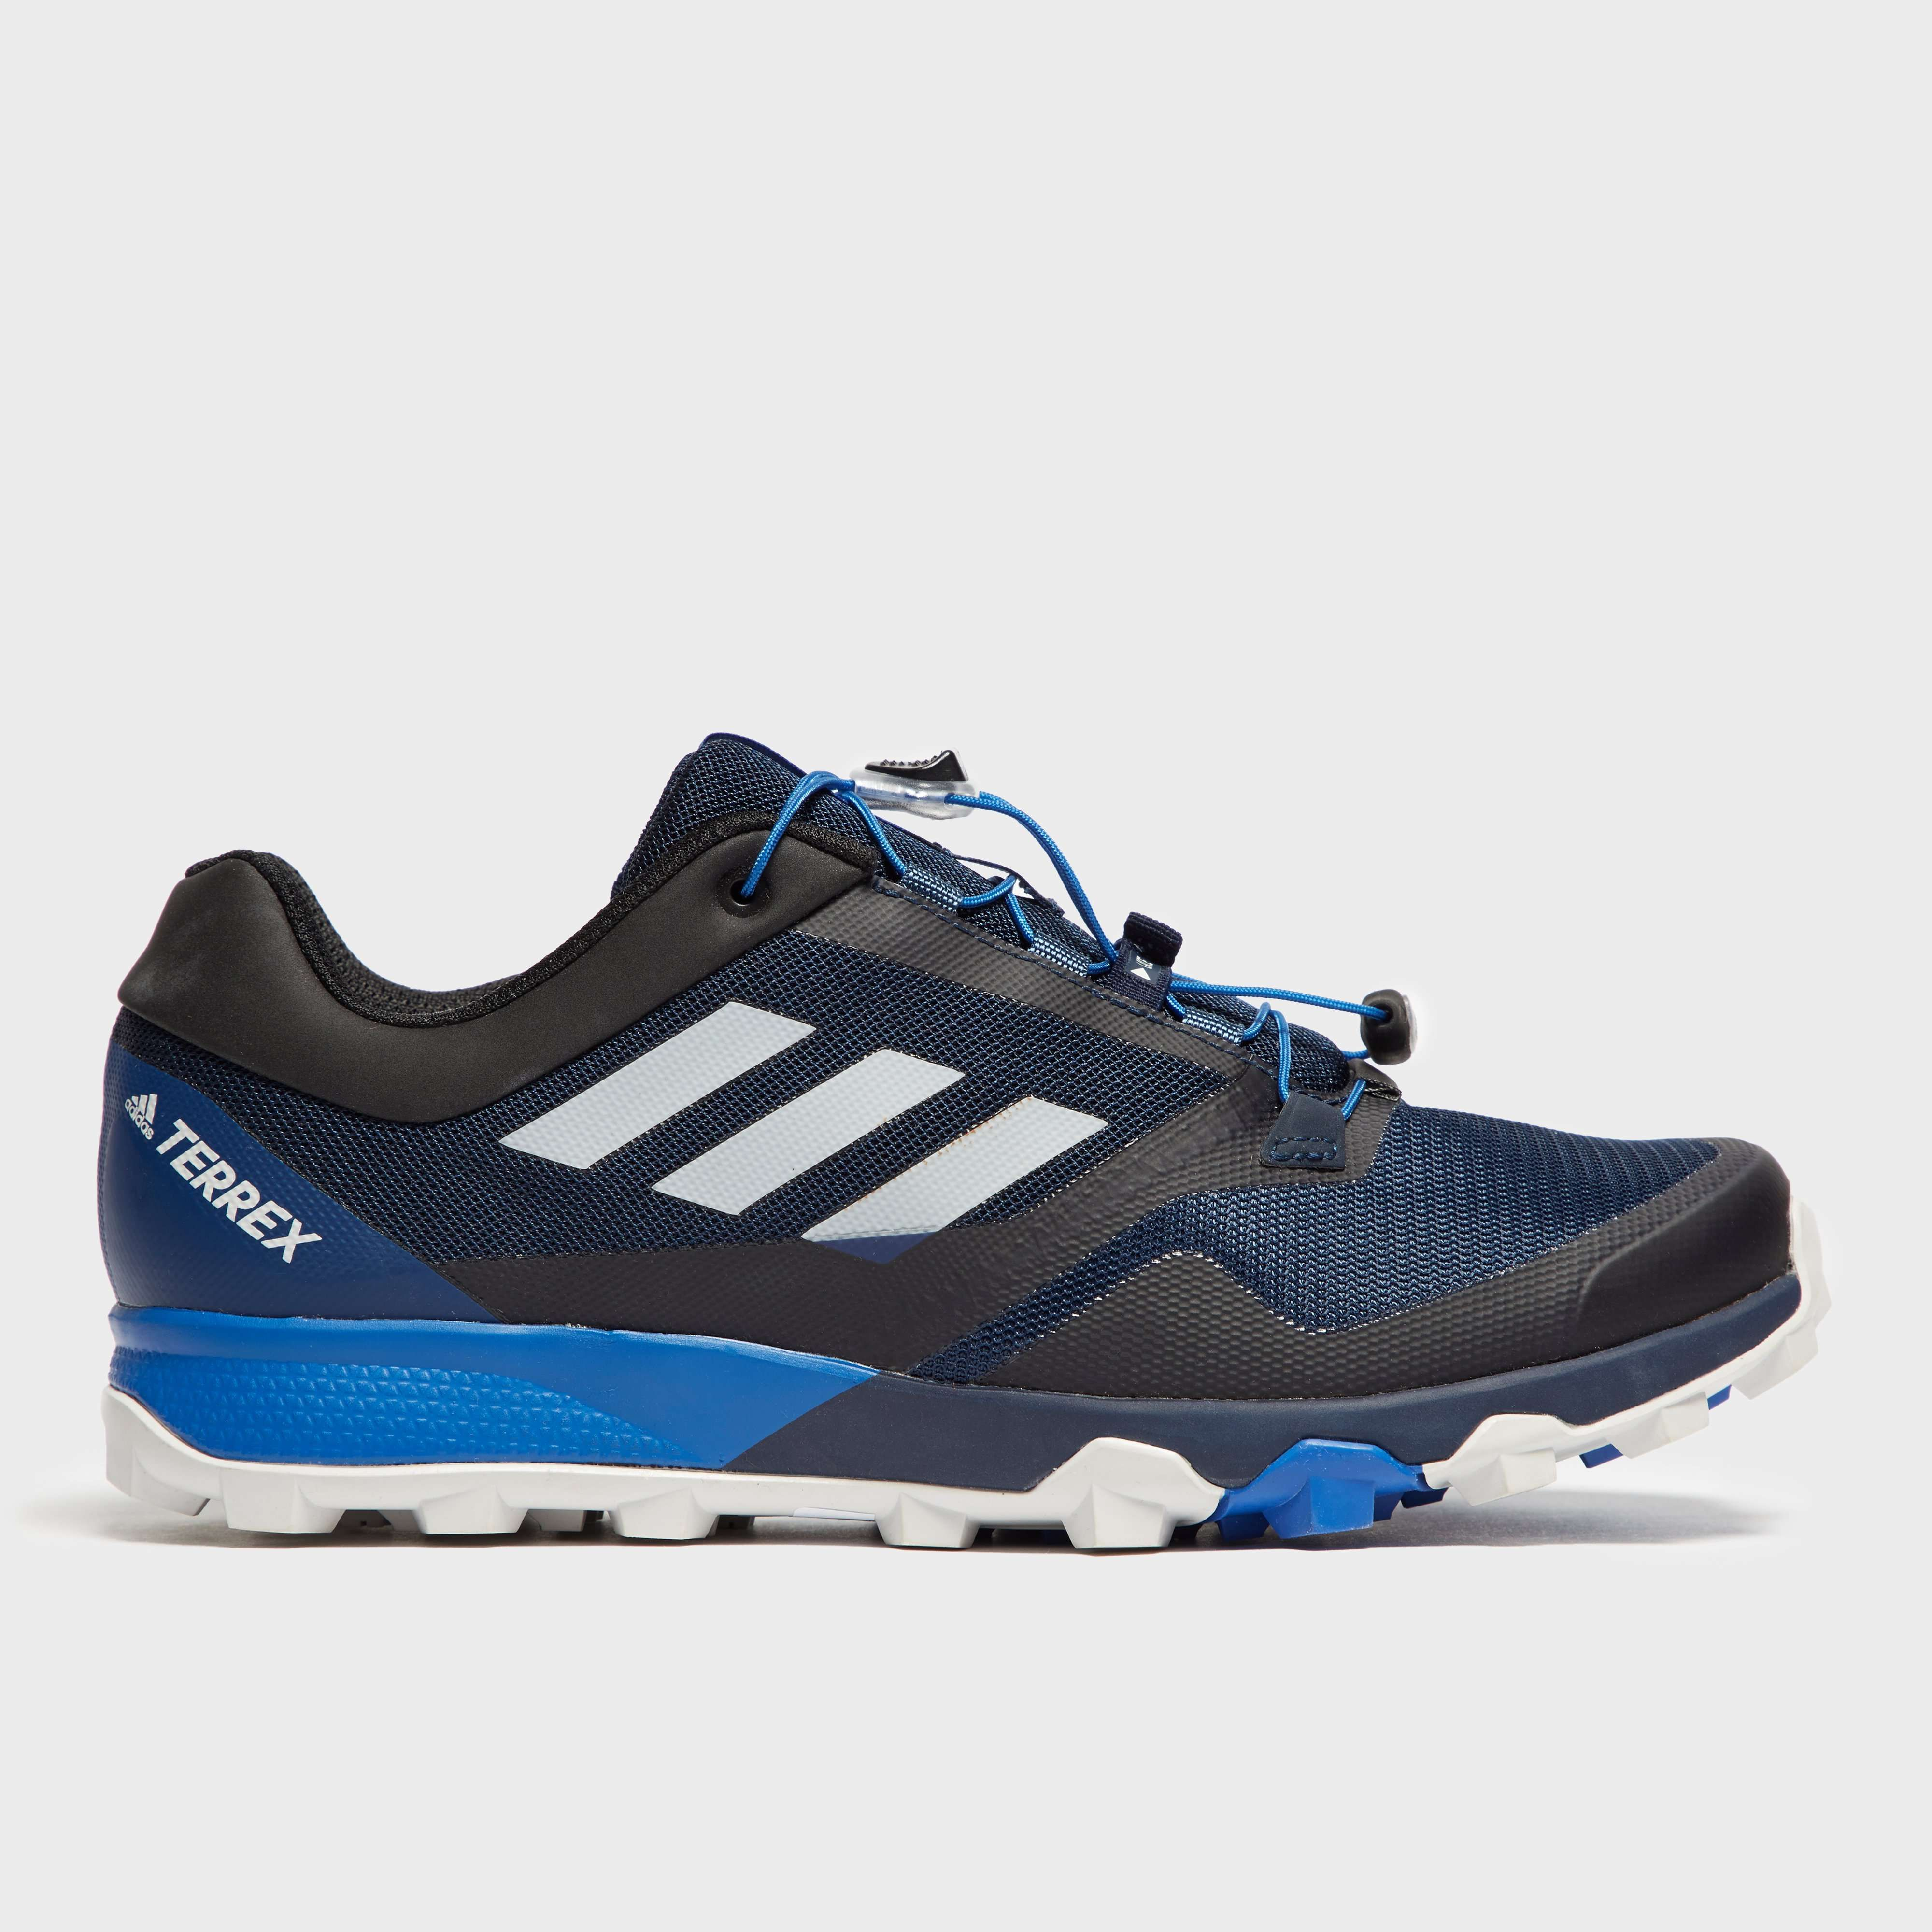 b2d7d77330475 ADIDAS Men s Terrex Trailmaker - find out more on our site. Shop online  with the